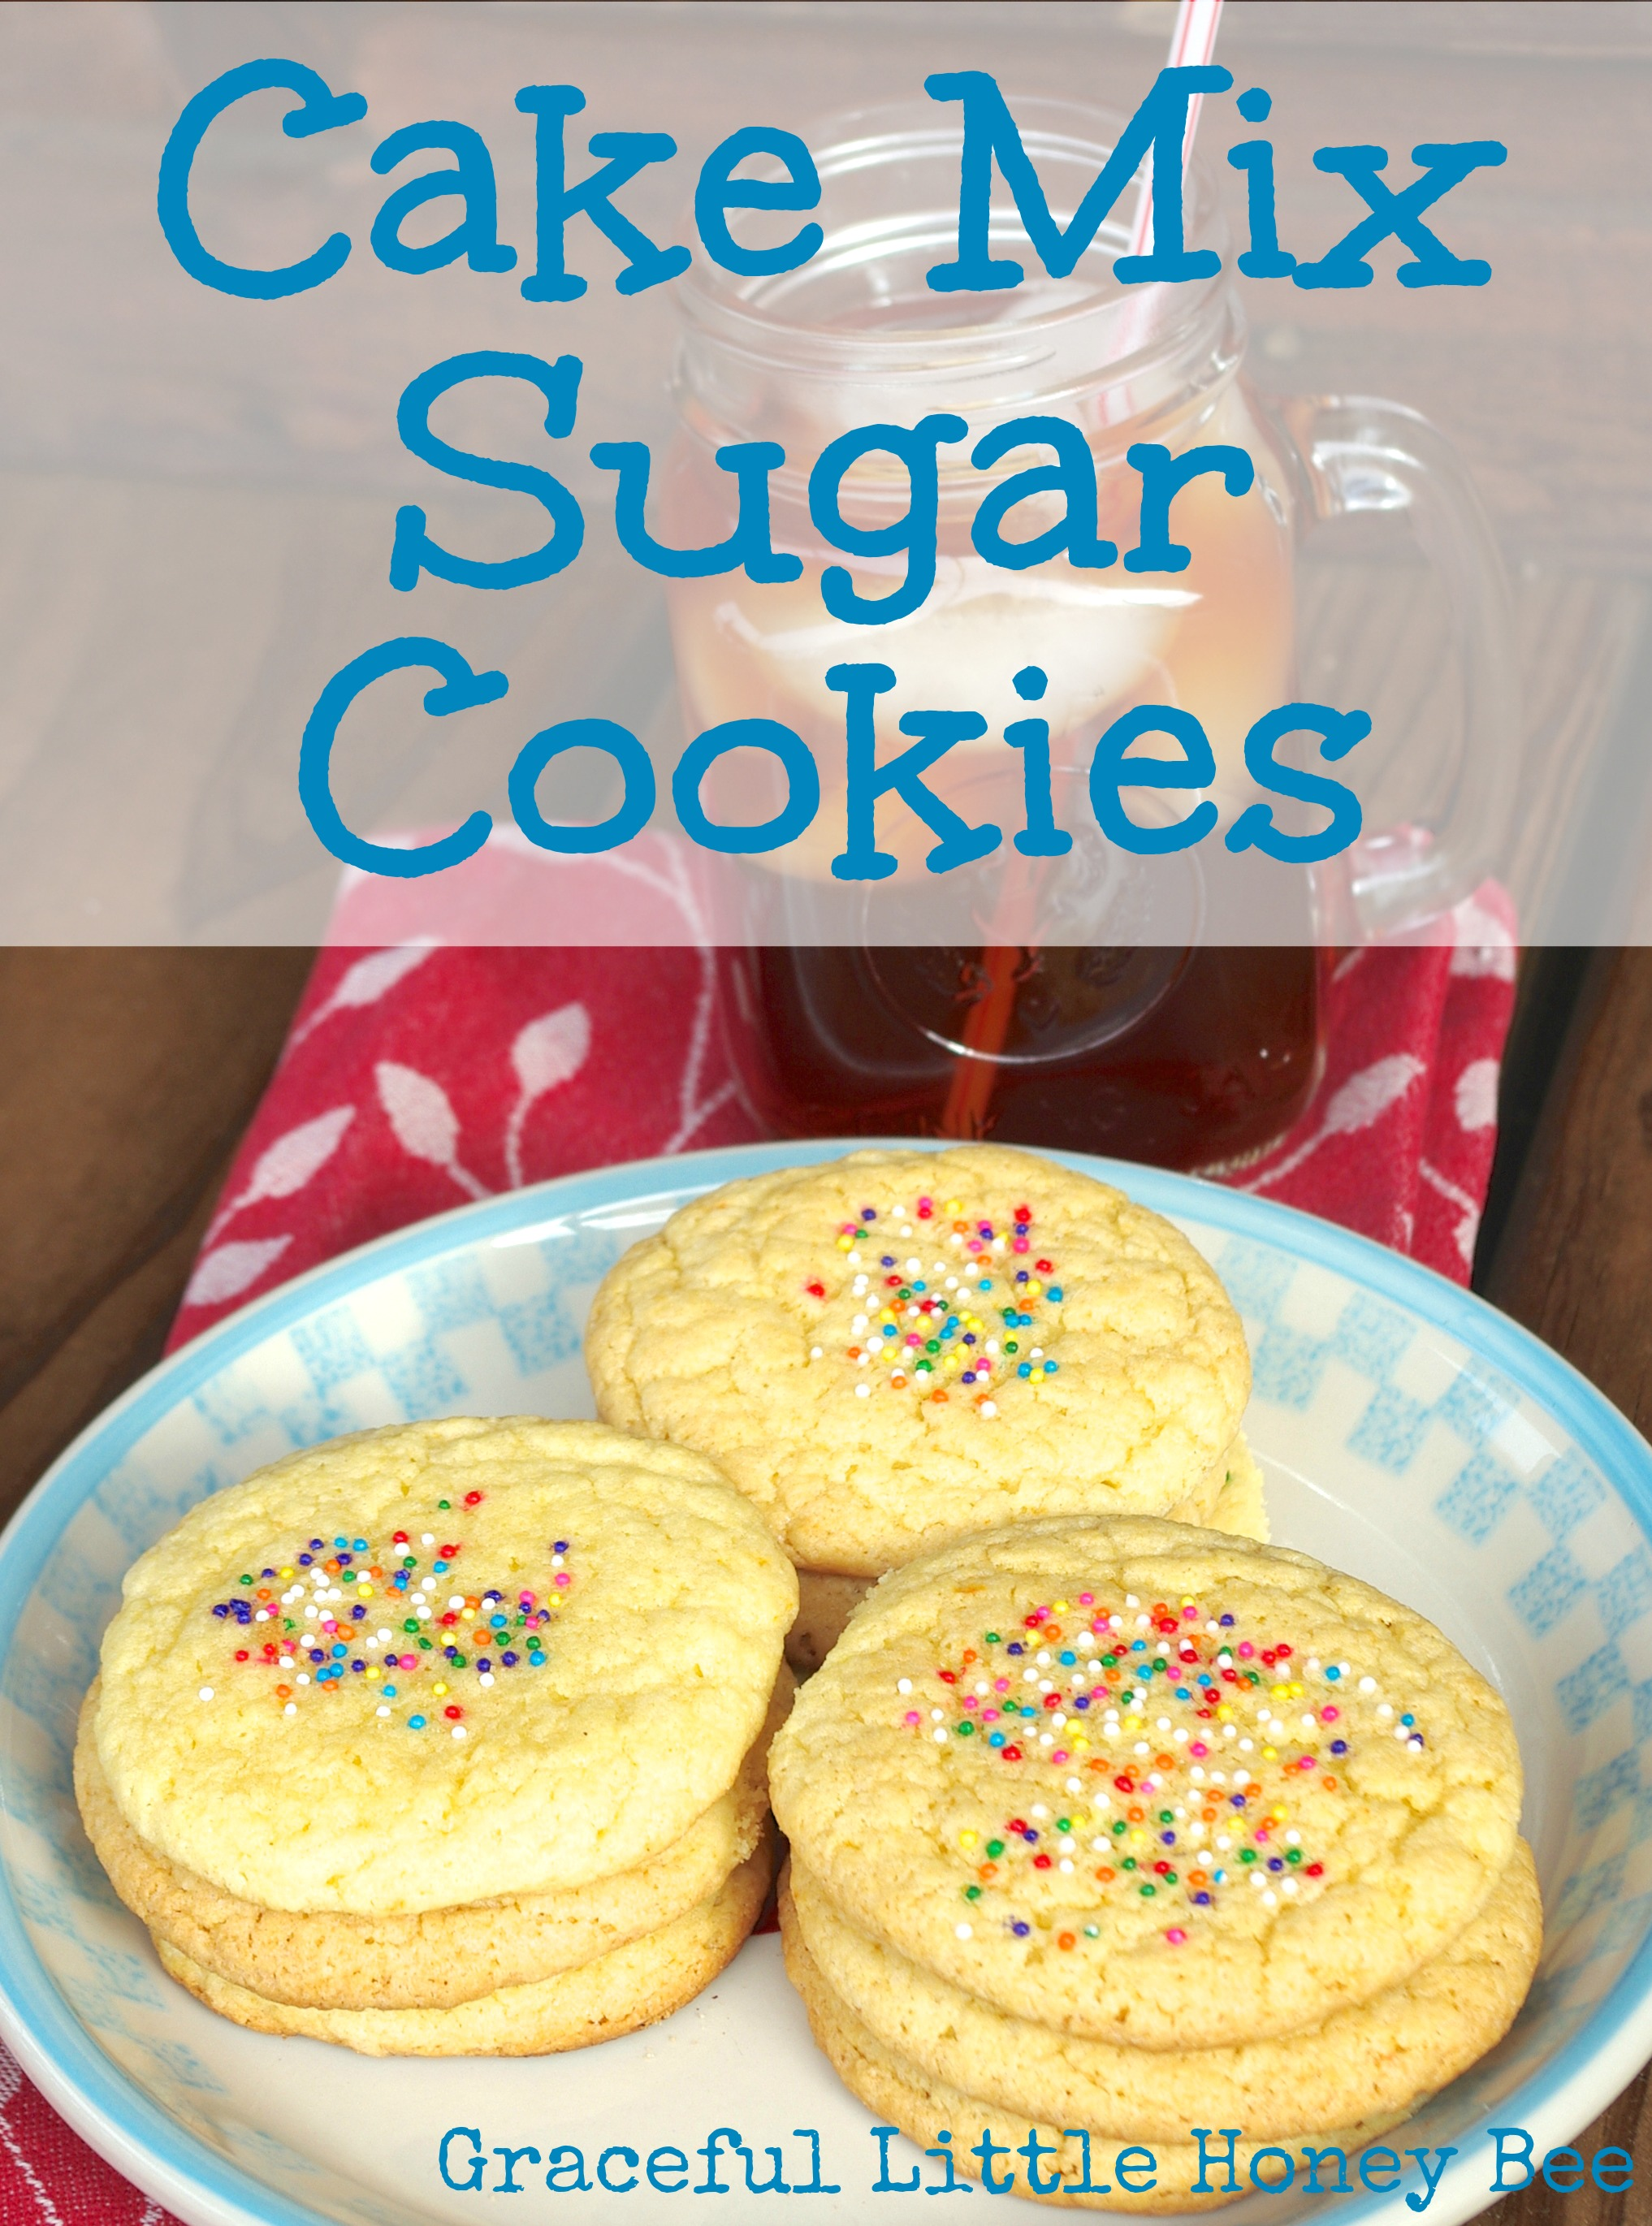 Super Easy Cookies Cake Mix